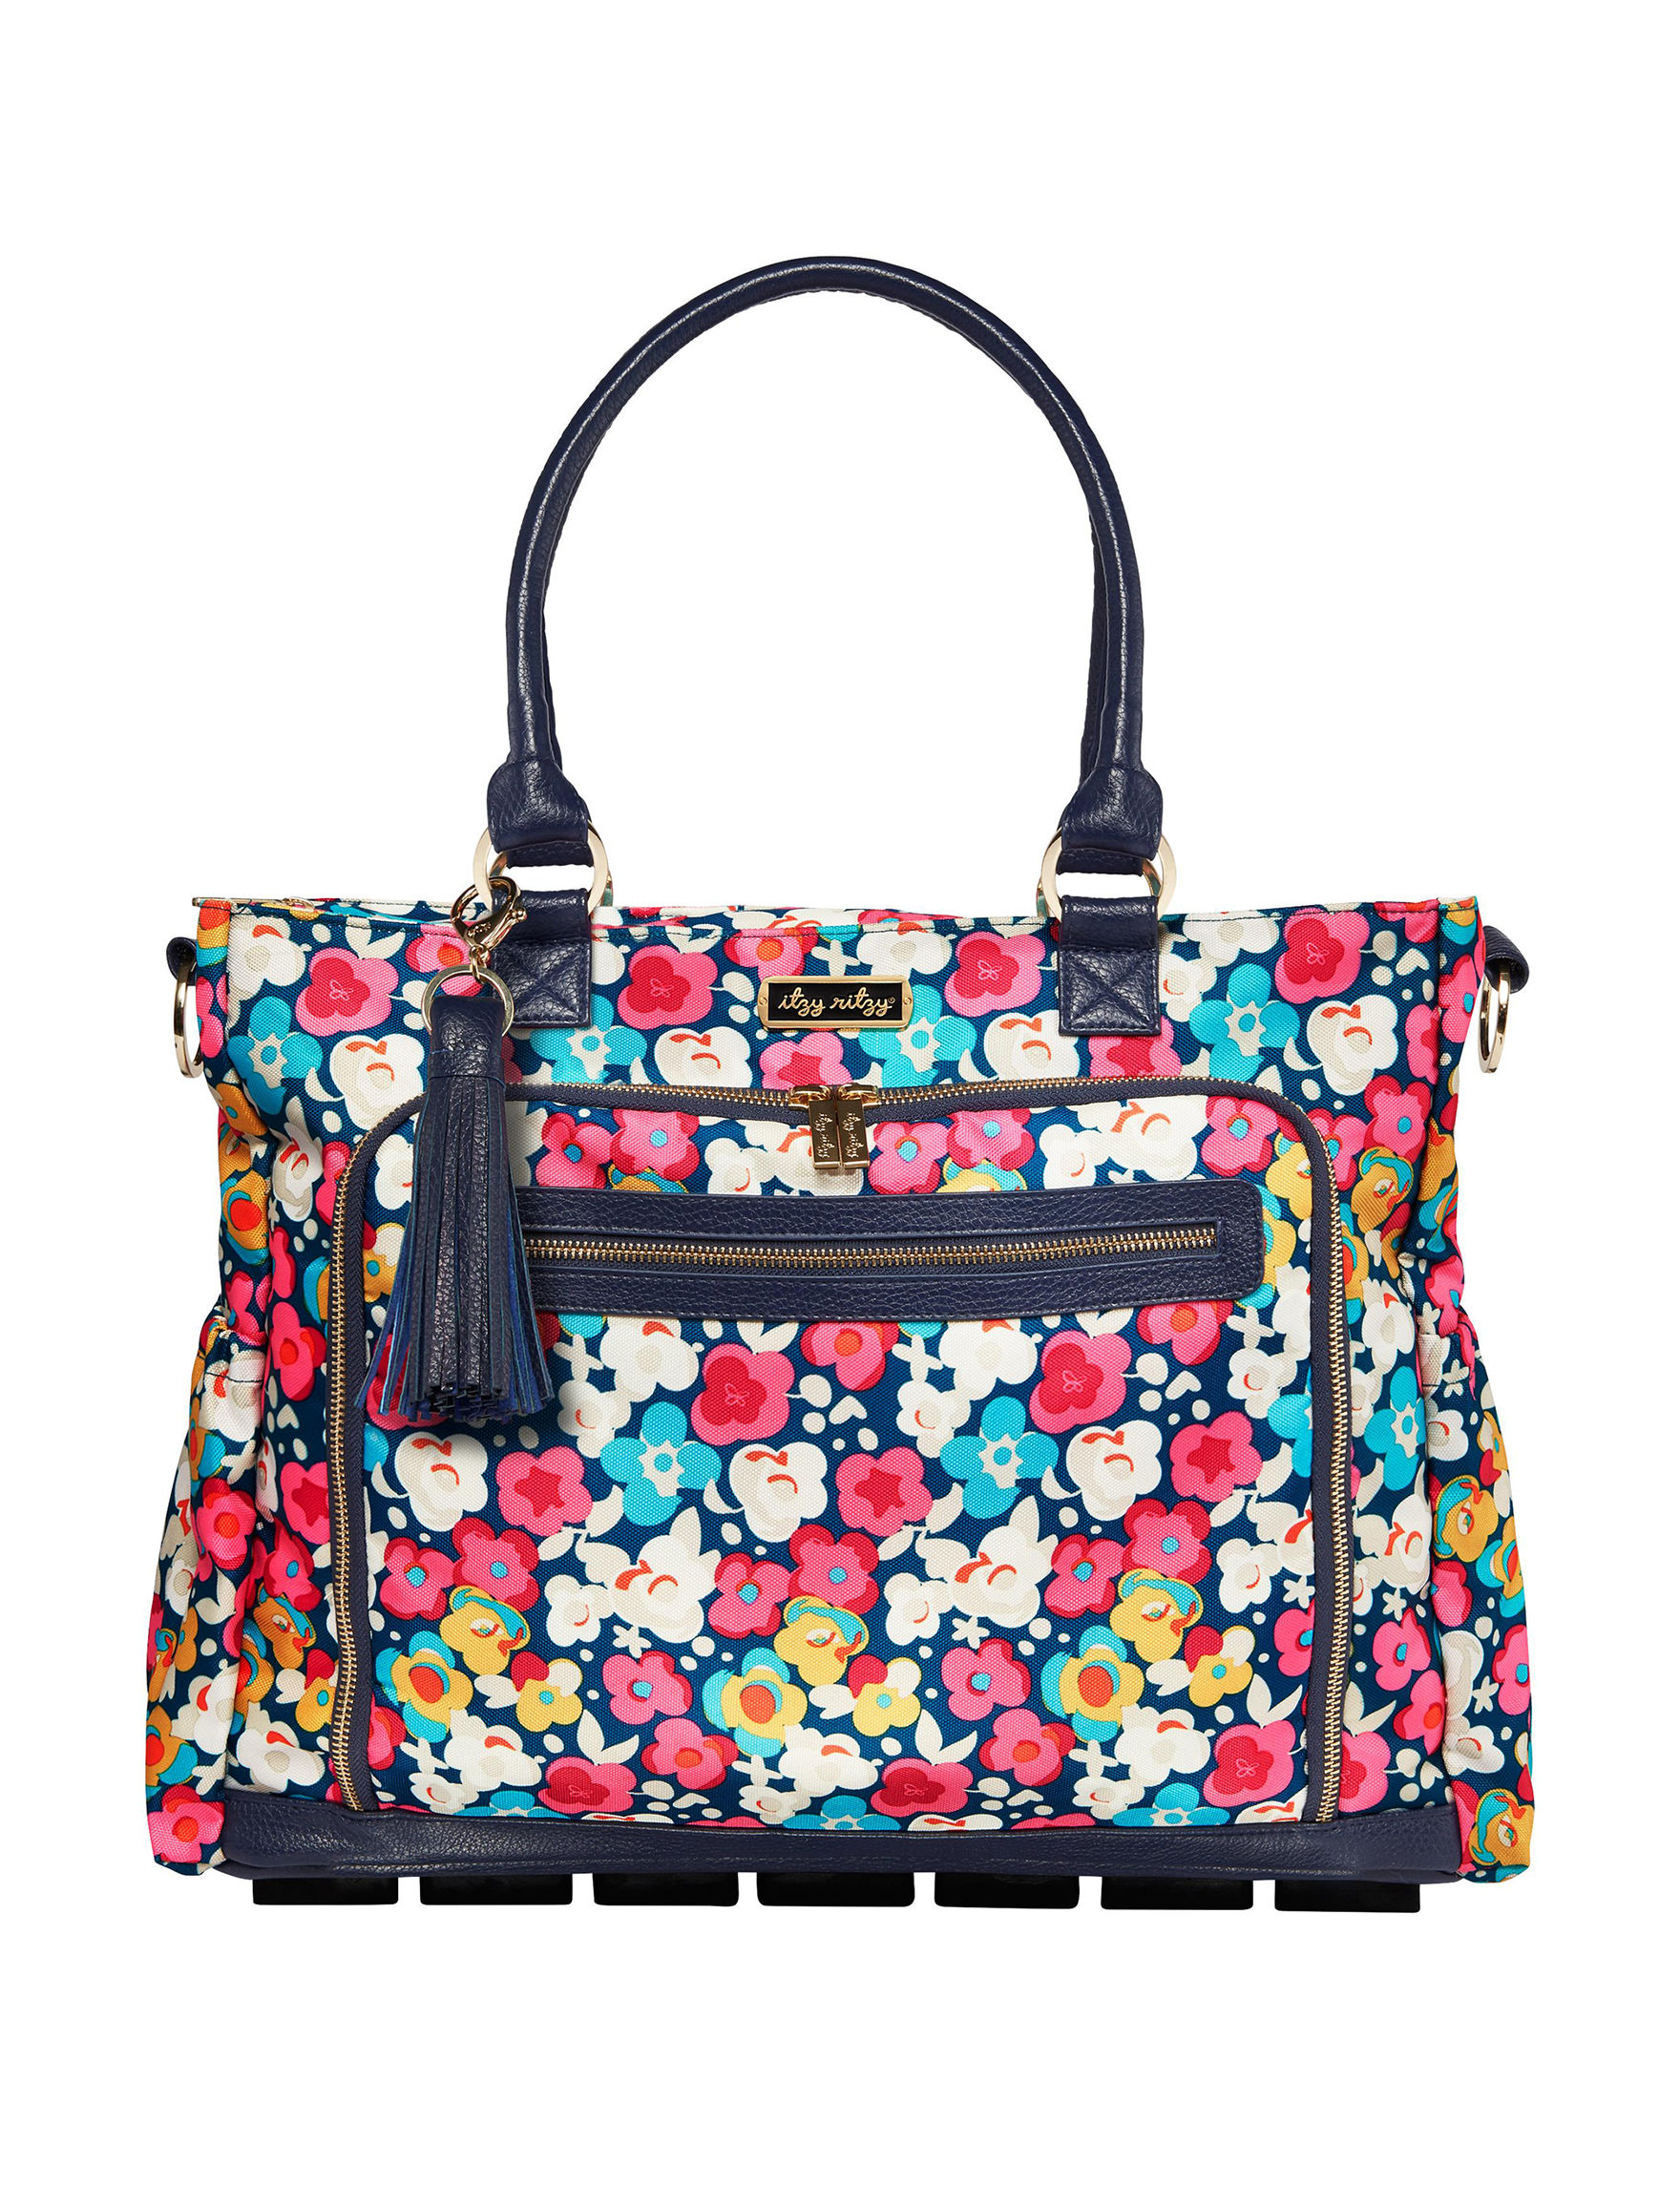 Itzy Ritzy Pink Floral Diaper Bags